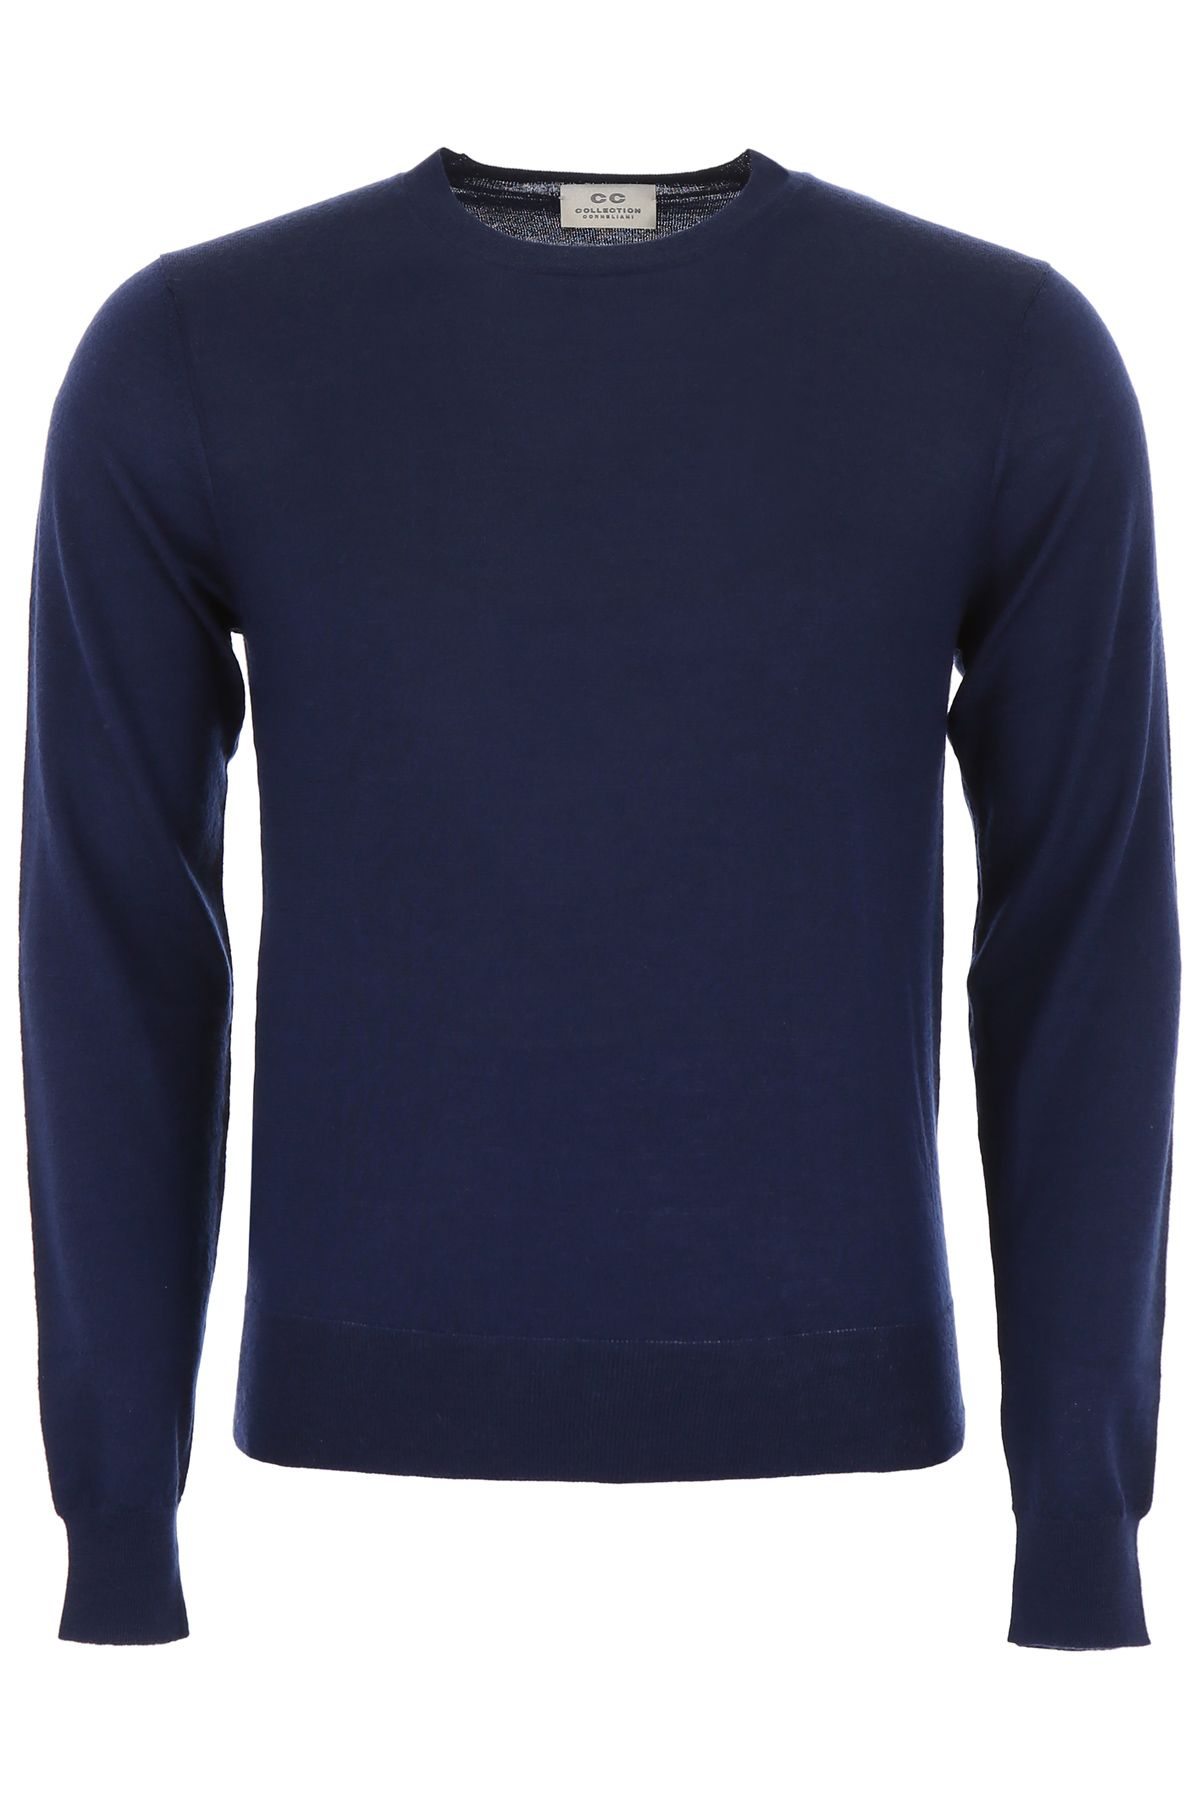 CC COLLECTION CORNELIANI Cashmere Pullover in Navy